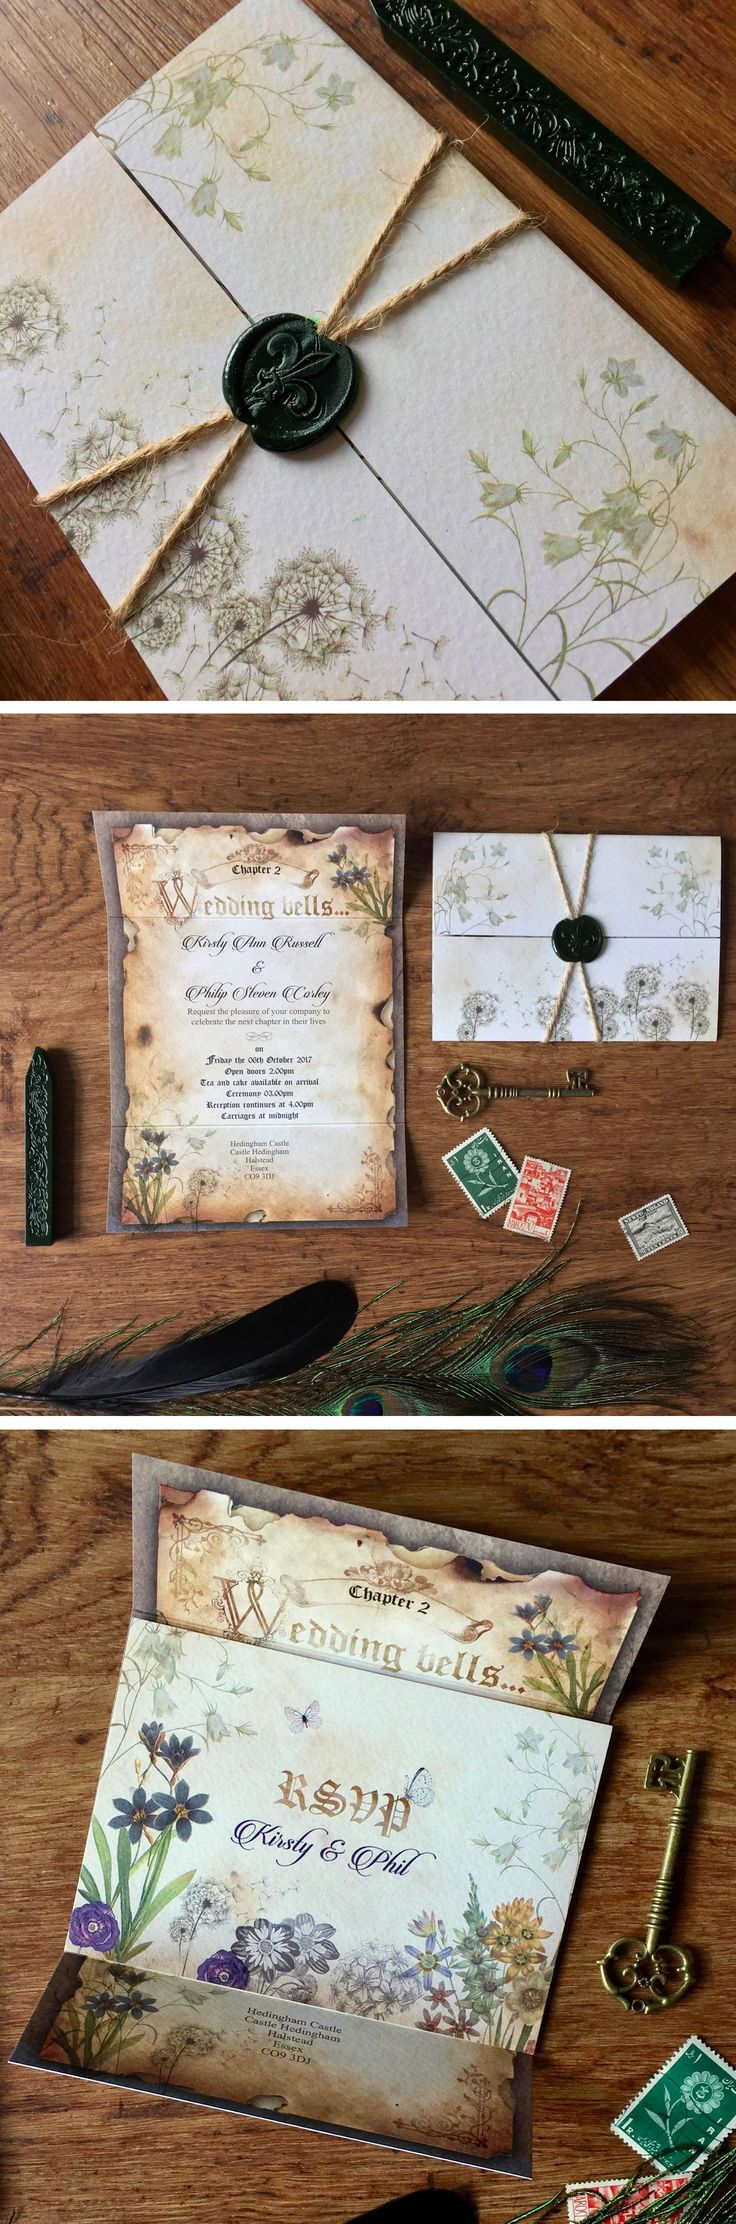 15153 Best Wedding Invitation Images On Pinterest Invitation Cards